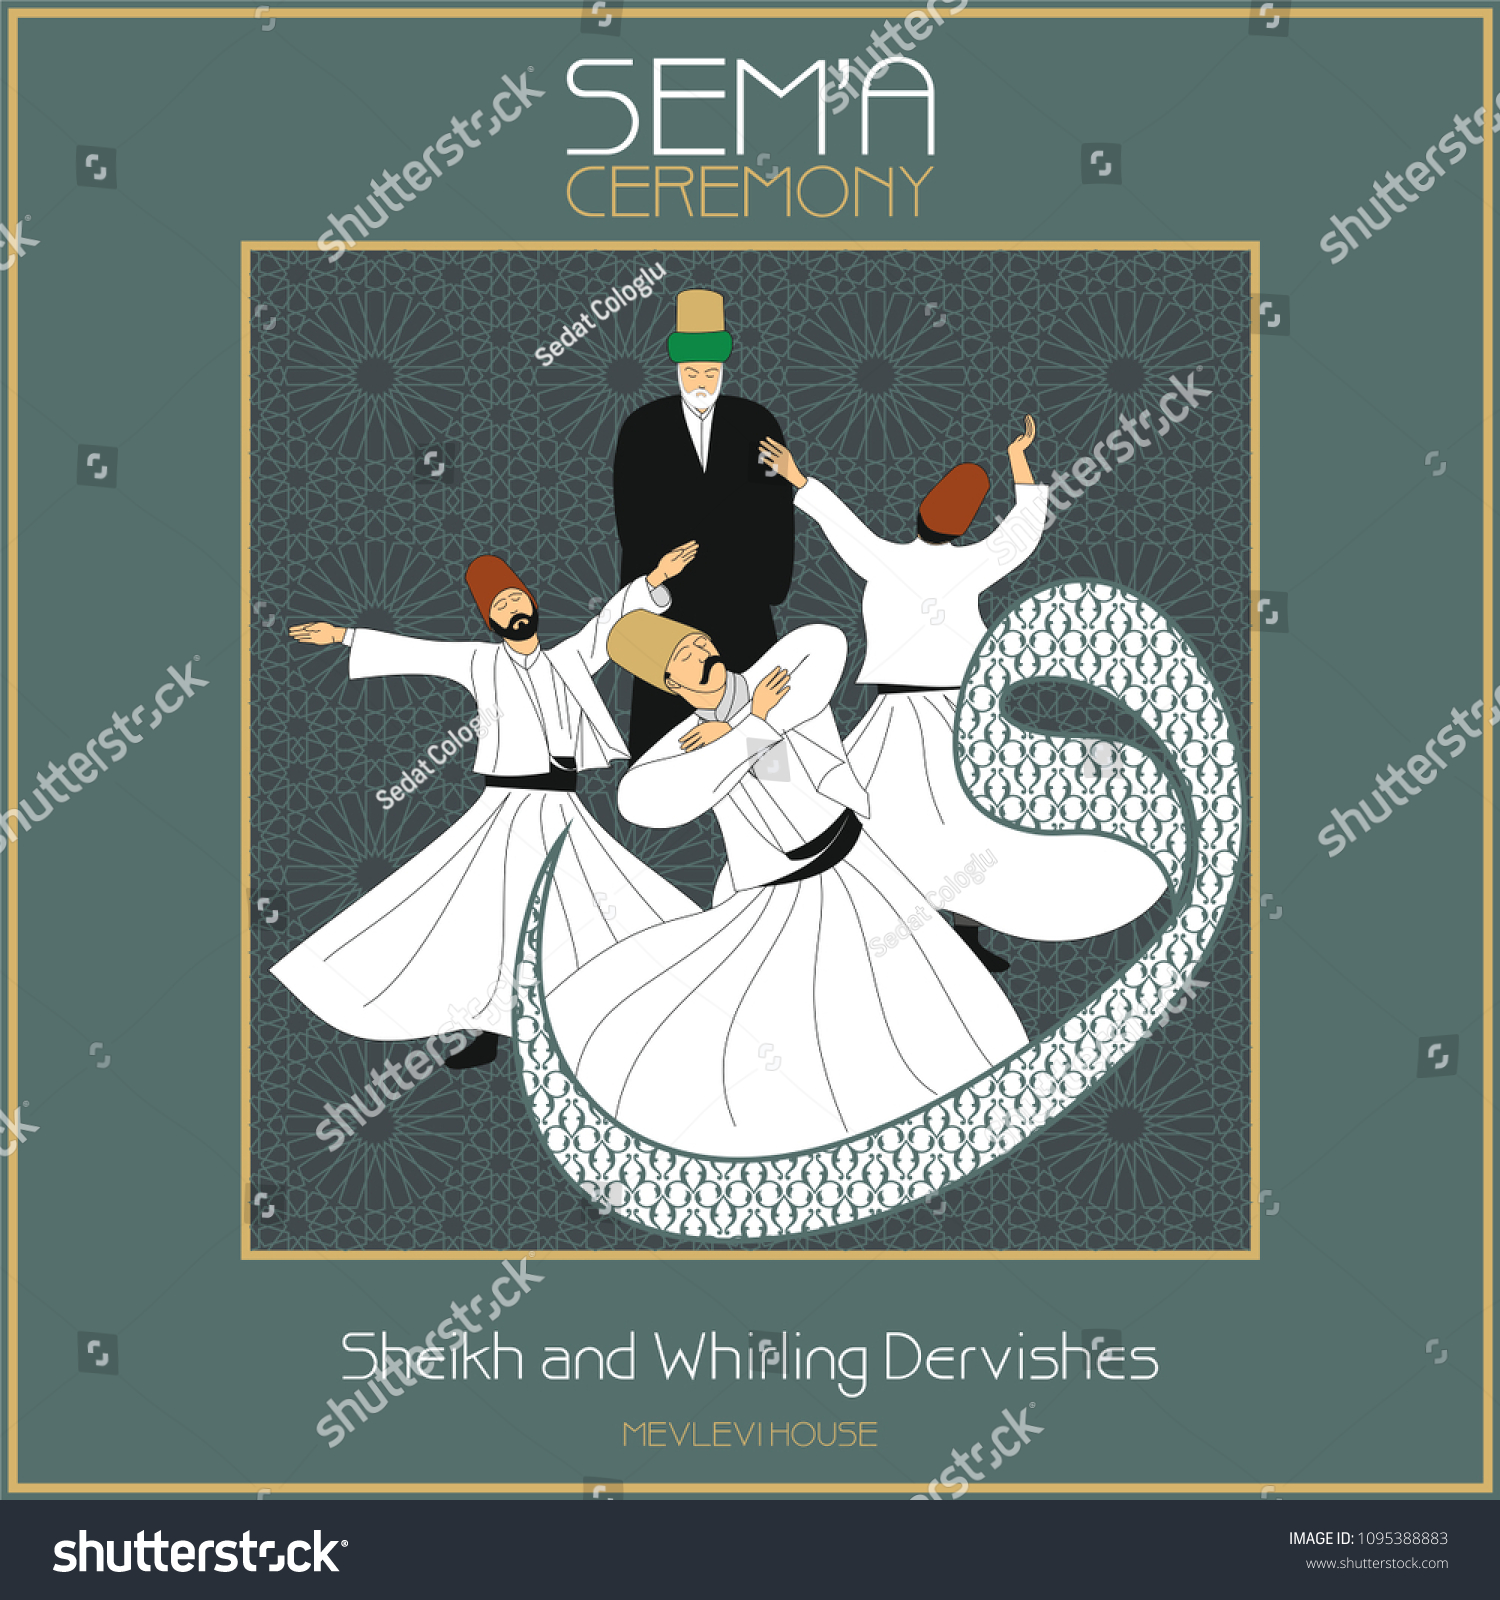 stock-vector-sema-is-a-ritual-of-mevlevi-belief-mevlevihane-is-where-these-ceremonies-took-place-this-graphic-1095388883